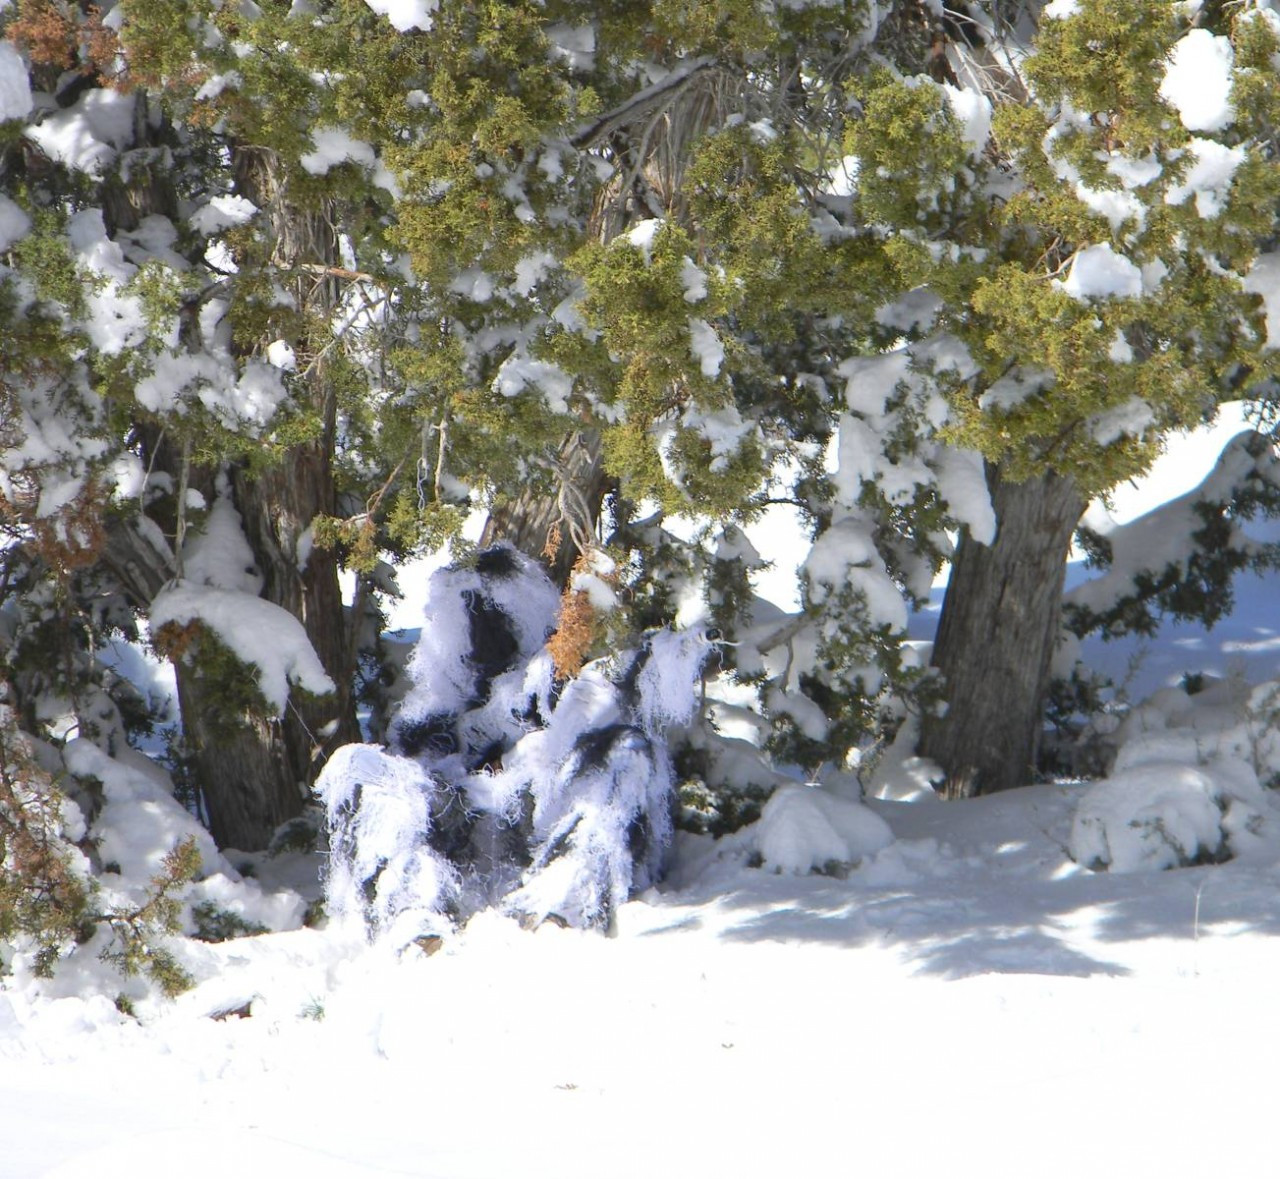 Snow camouflage ghillie (6 yards from camera)